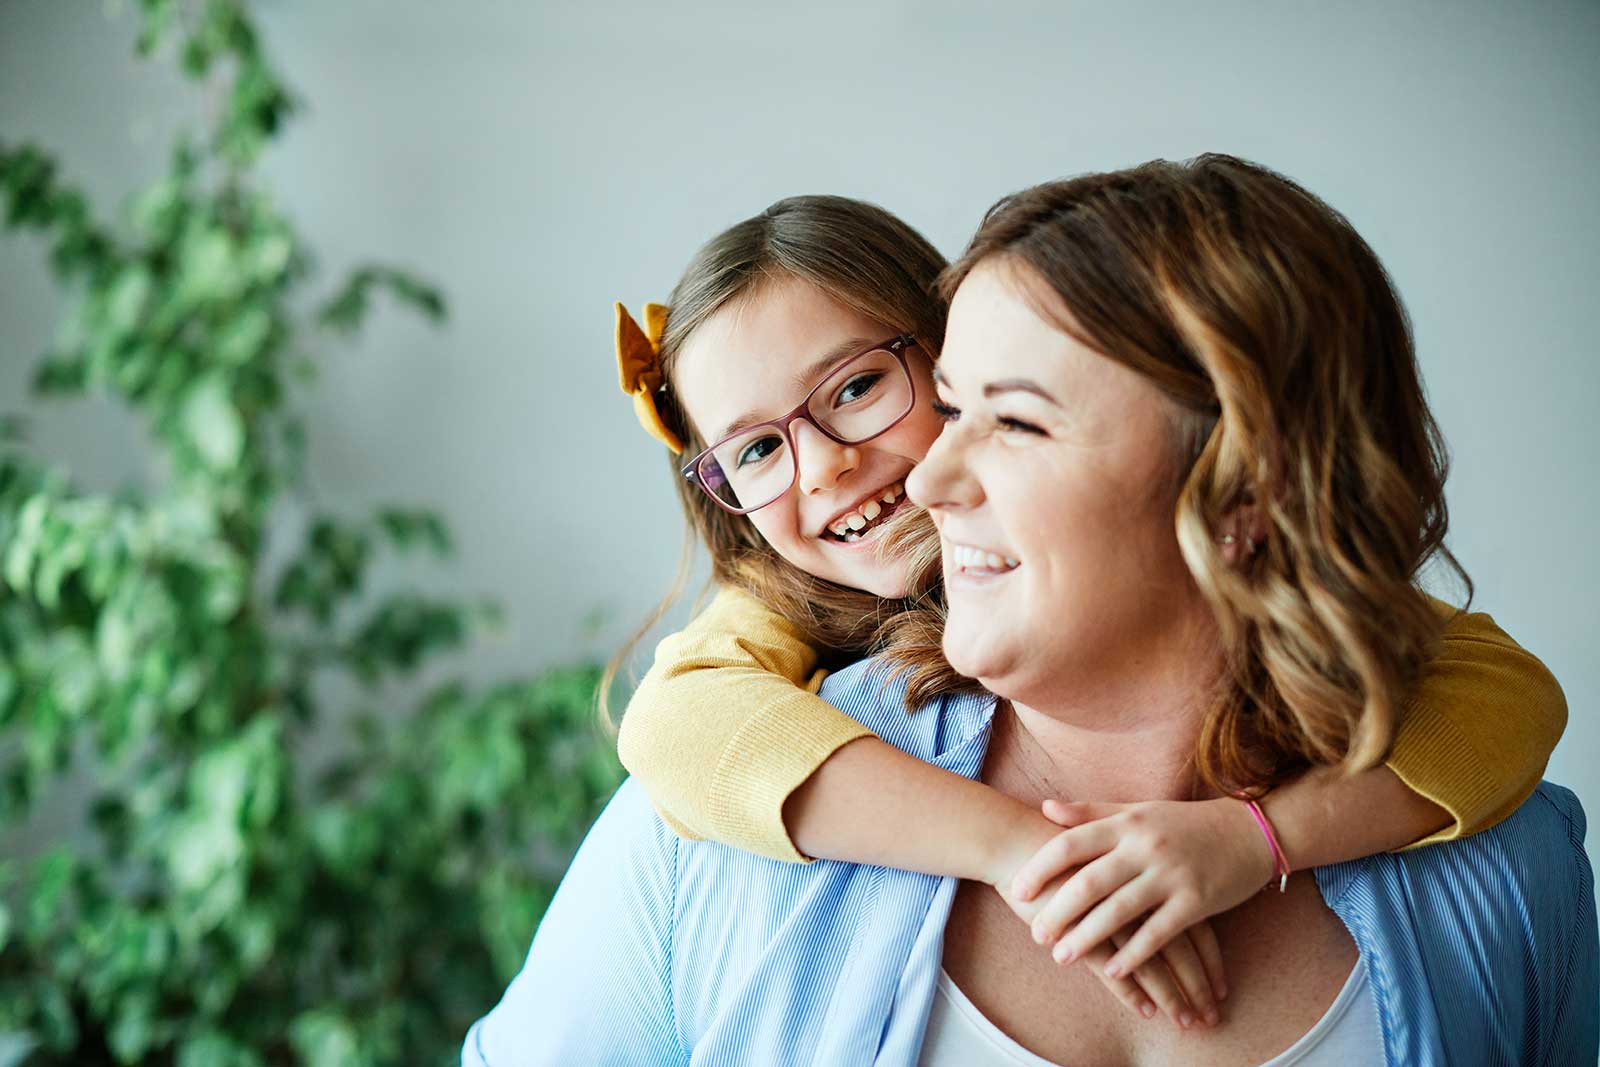 Daughter wrapping arms around mother